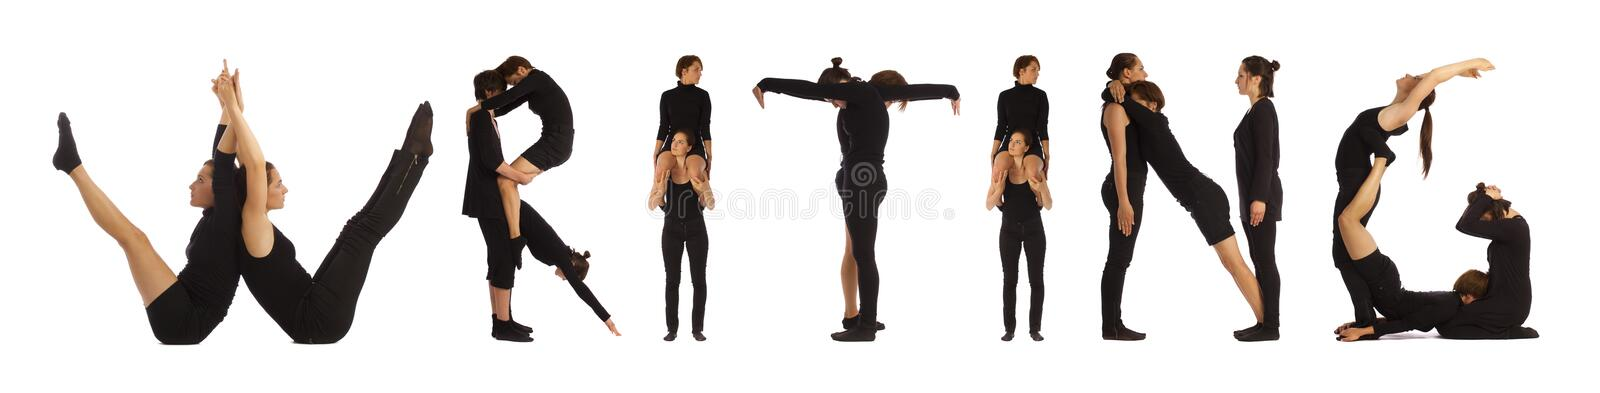 Black dressed people forming WRITING word. Over white background royalty free stock photography